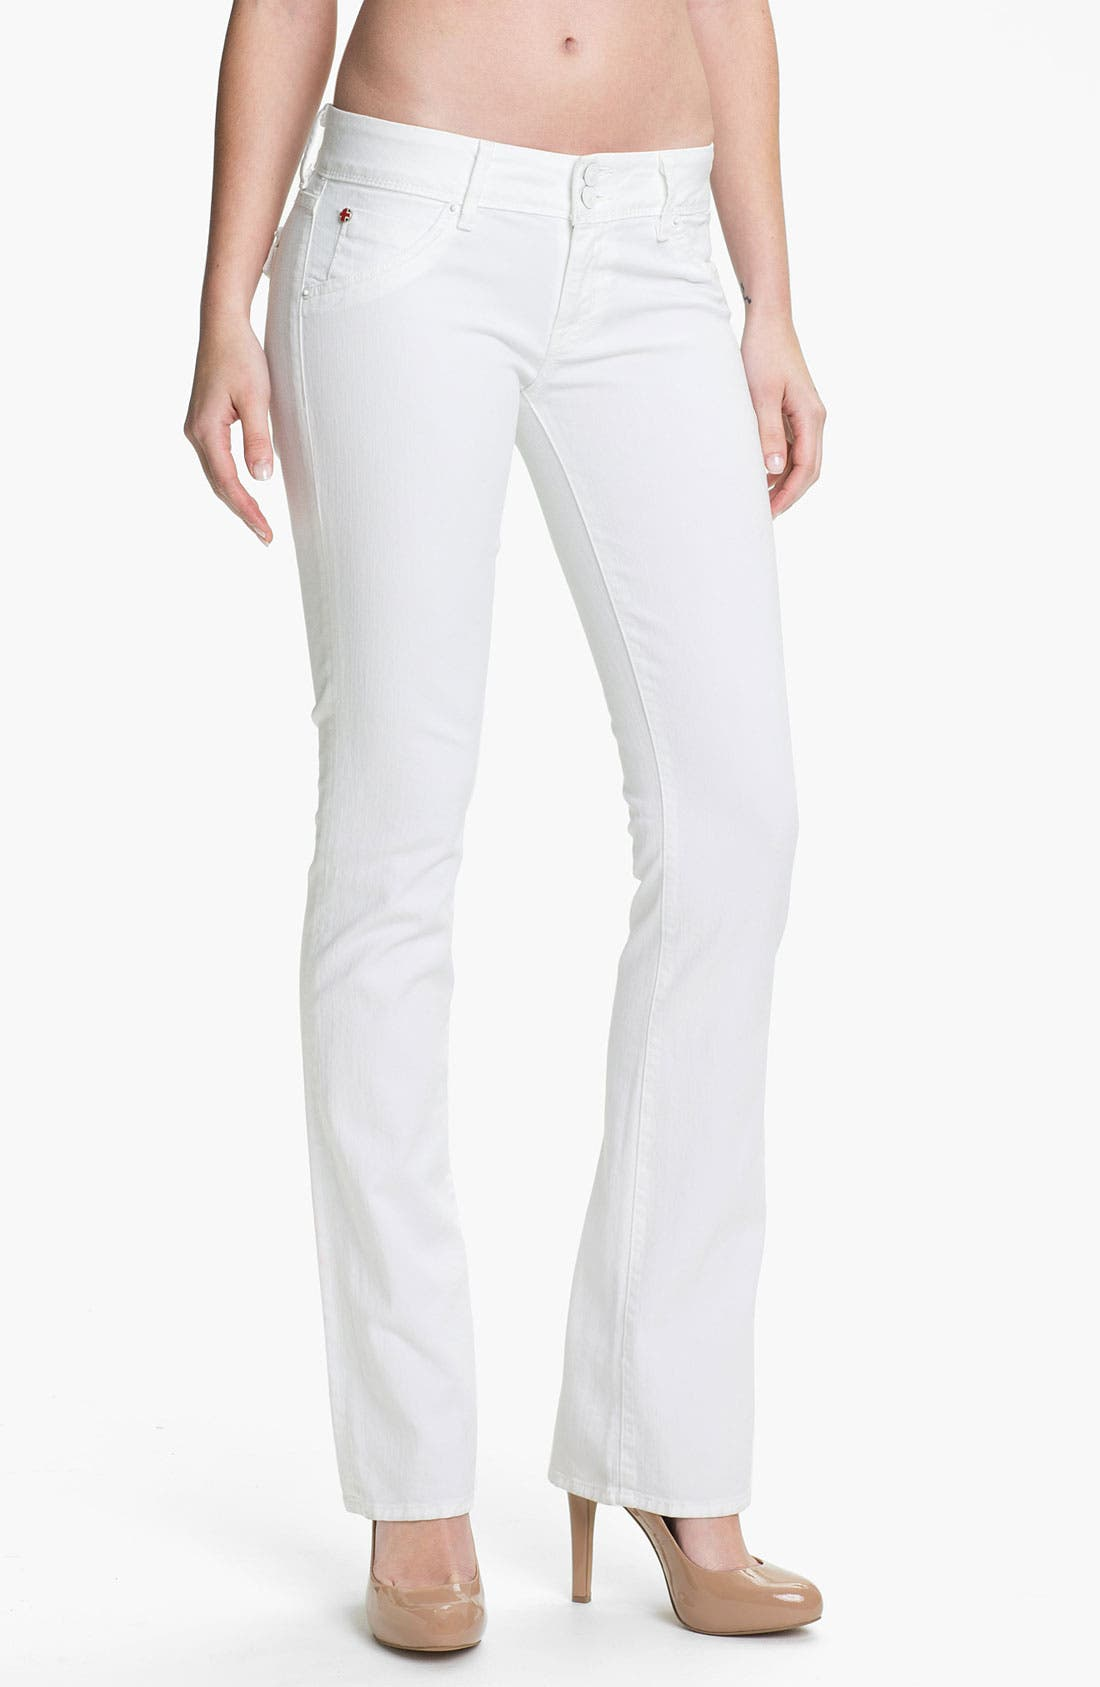 Main Image - Hudson Jeans 'Beth' Baby Bootcut Jeans (White)